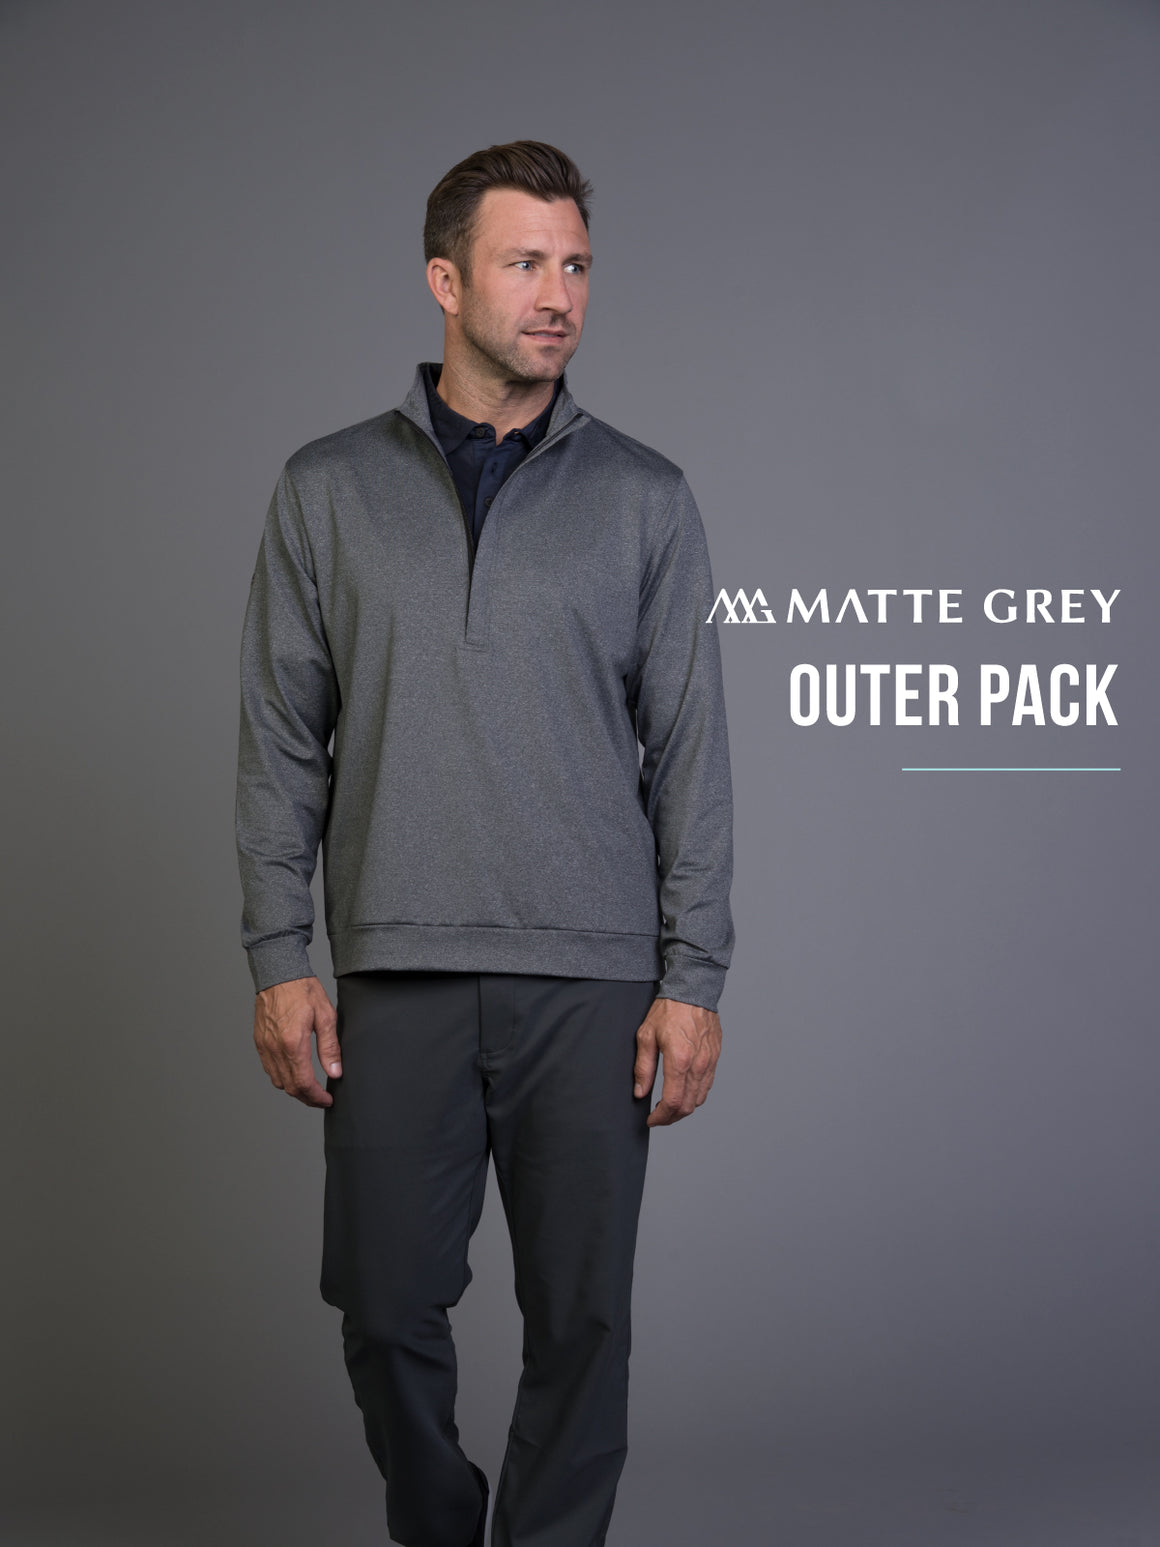 Matte Grey Outer Sample Pack Flash Sale